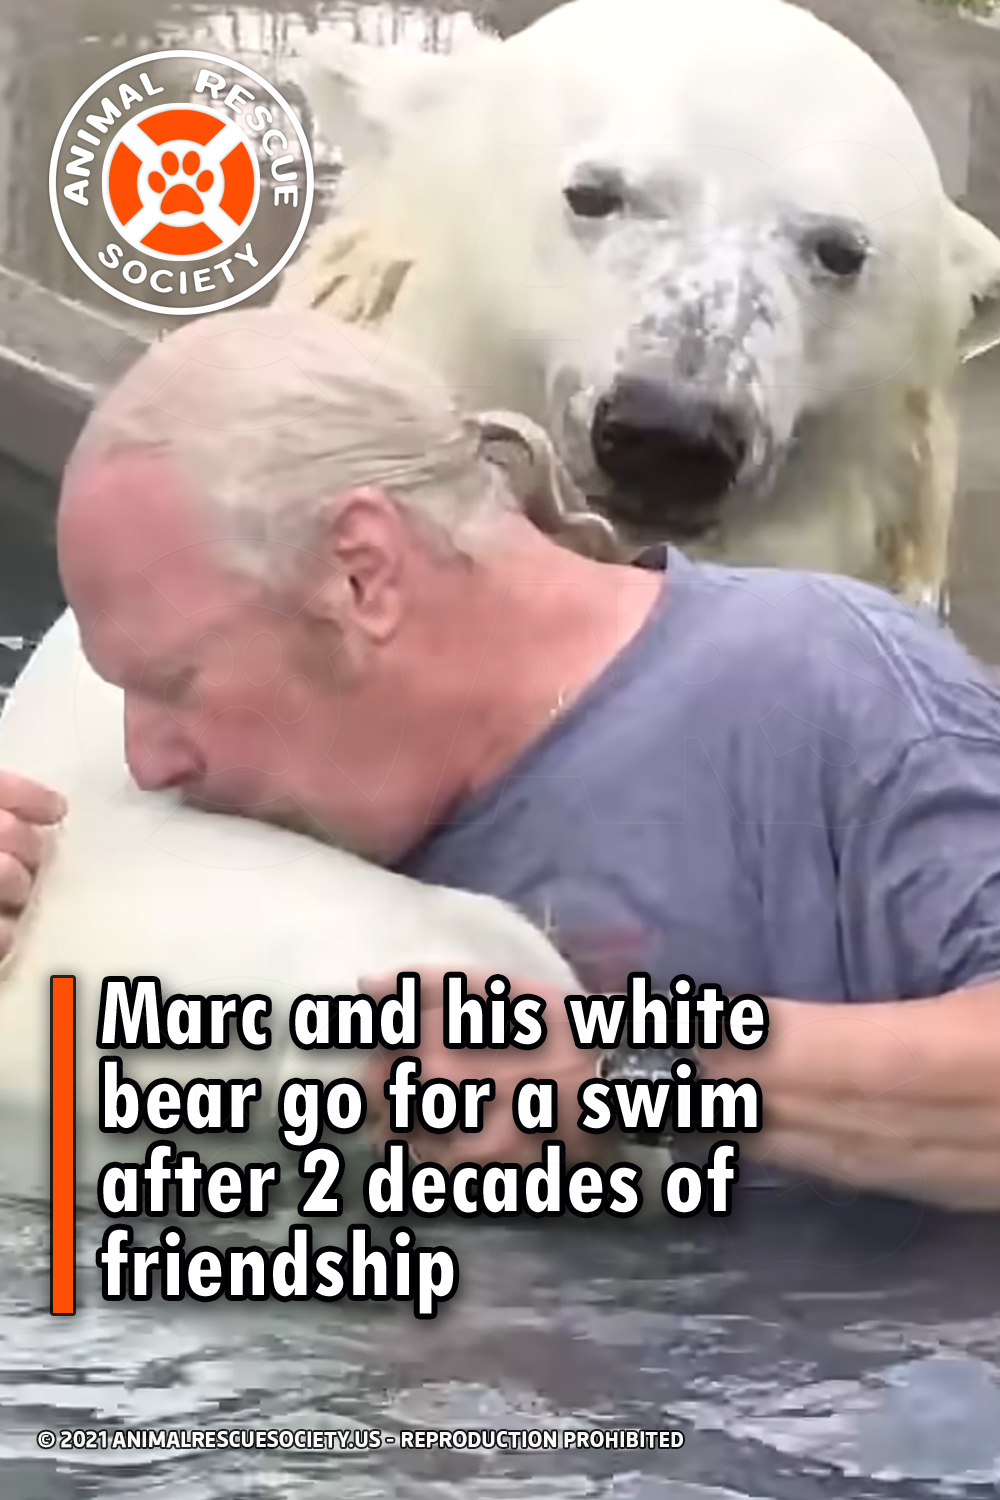 Marc and his white bear go for a swim after 2 decades of friendship